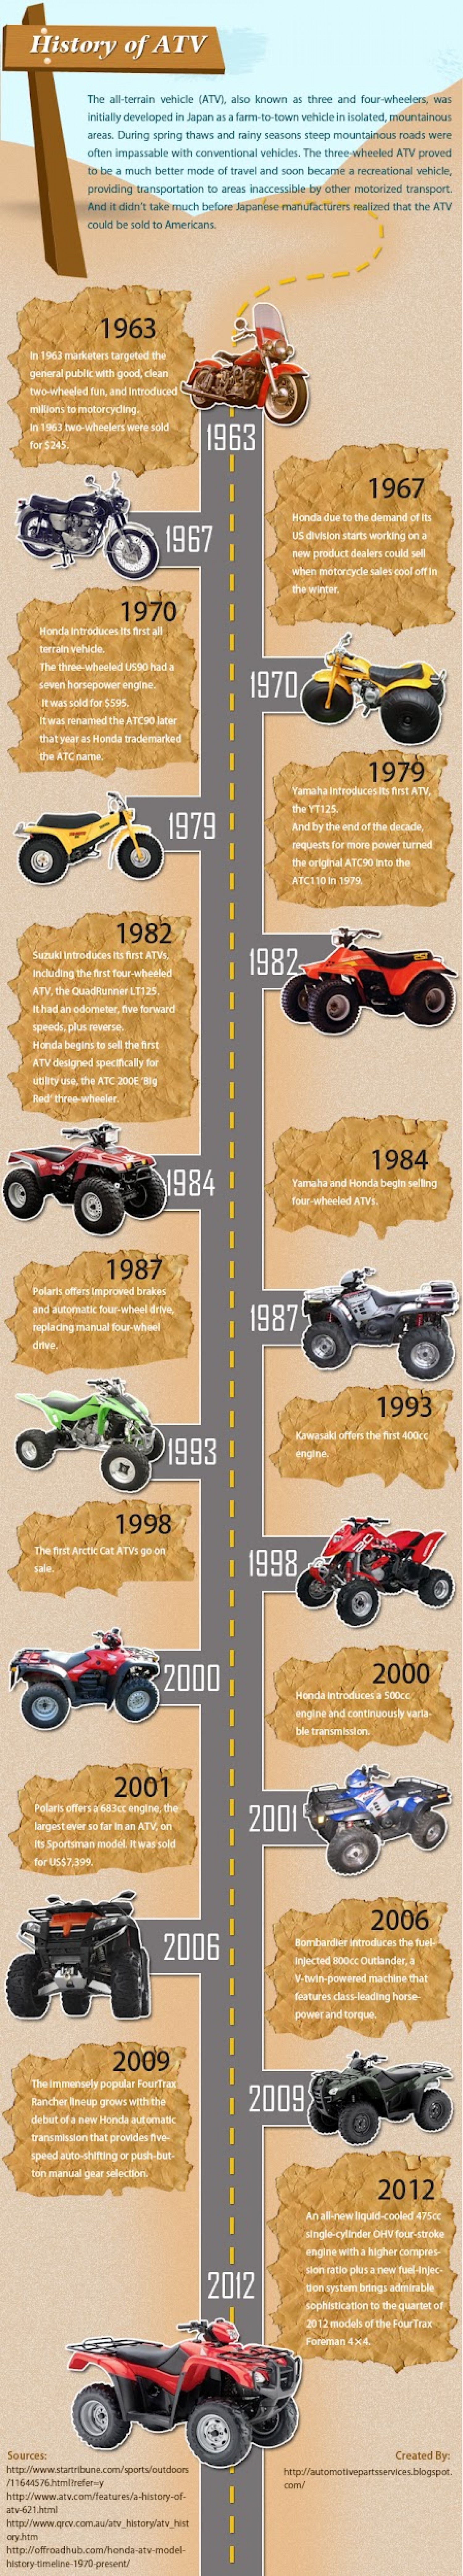 History of ATV Infographic